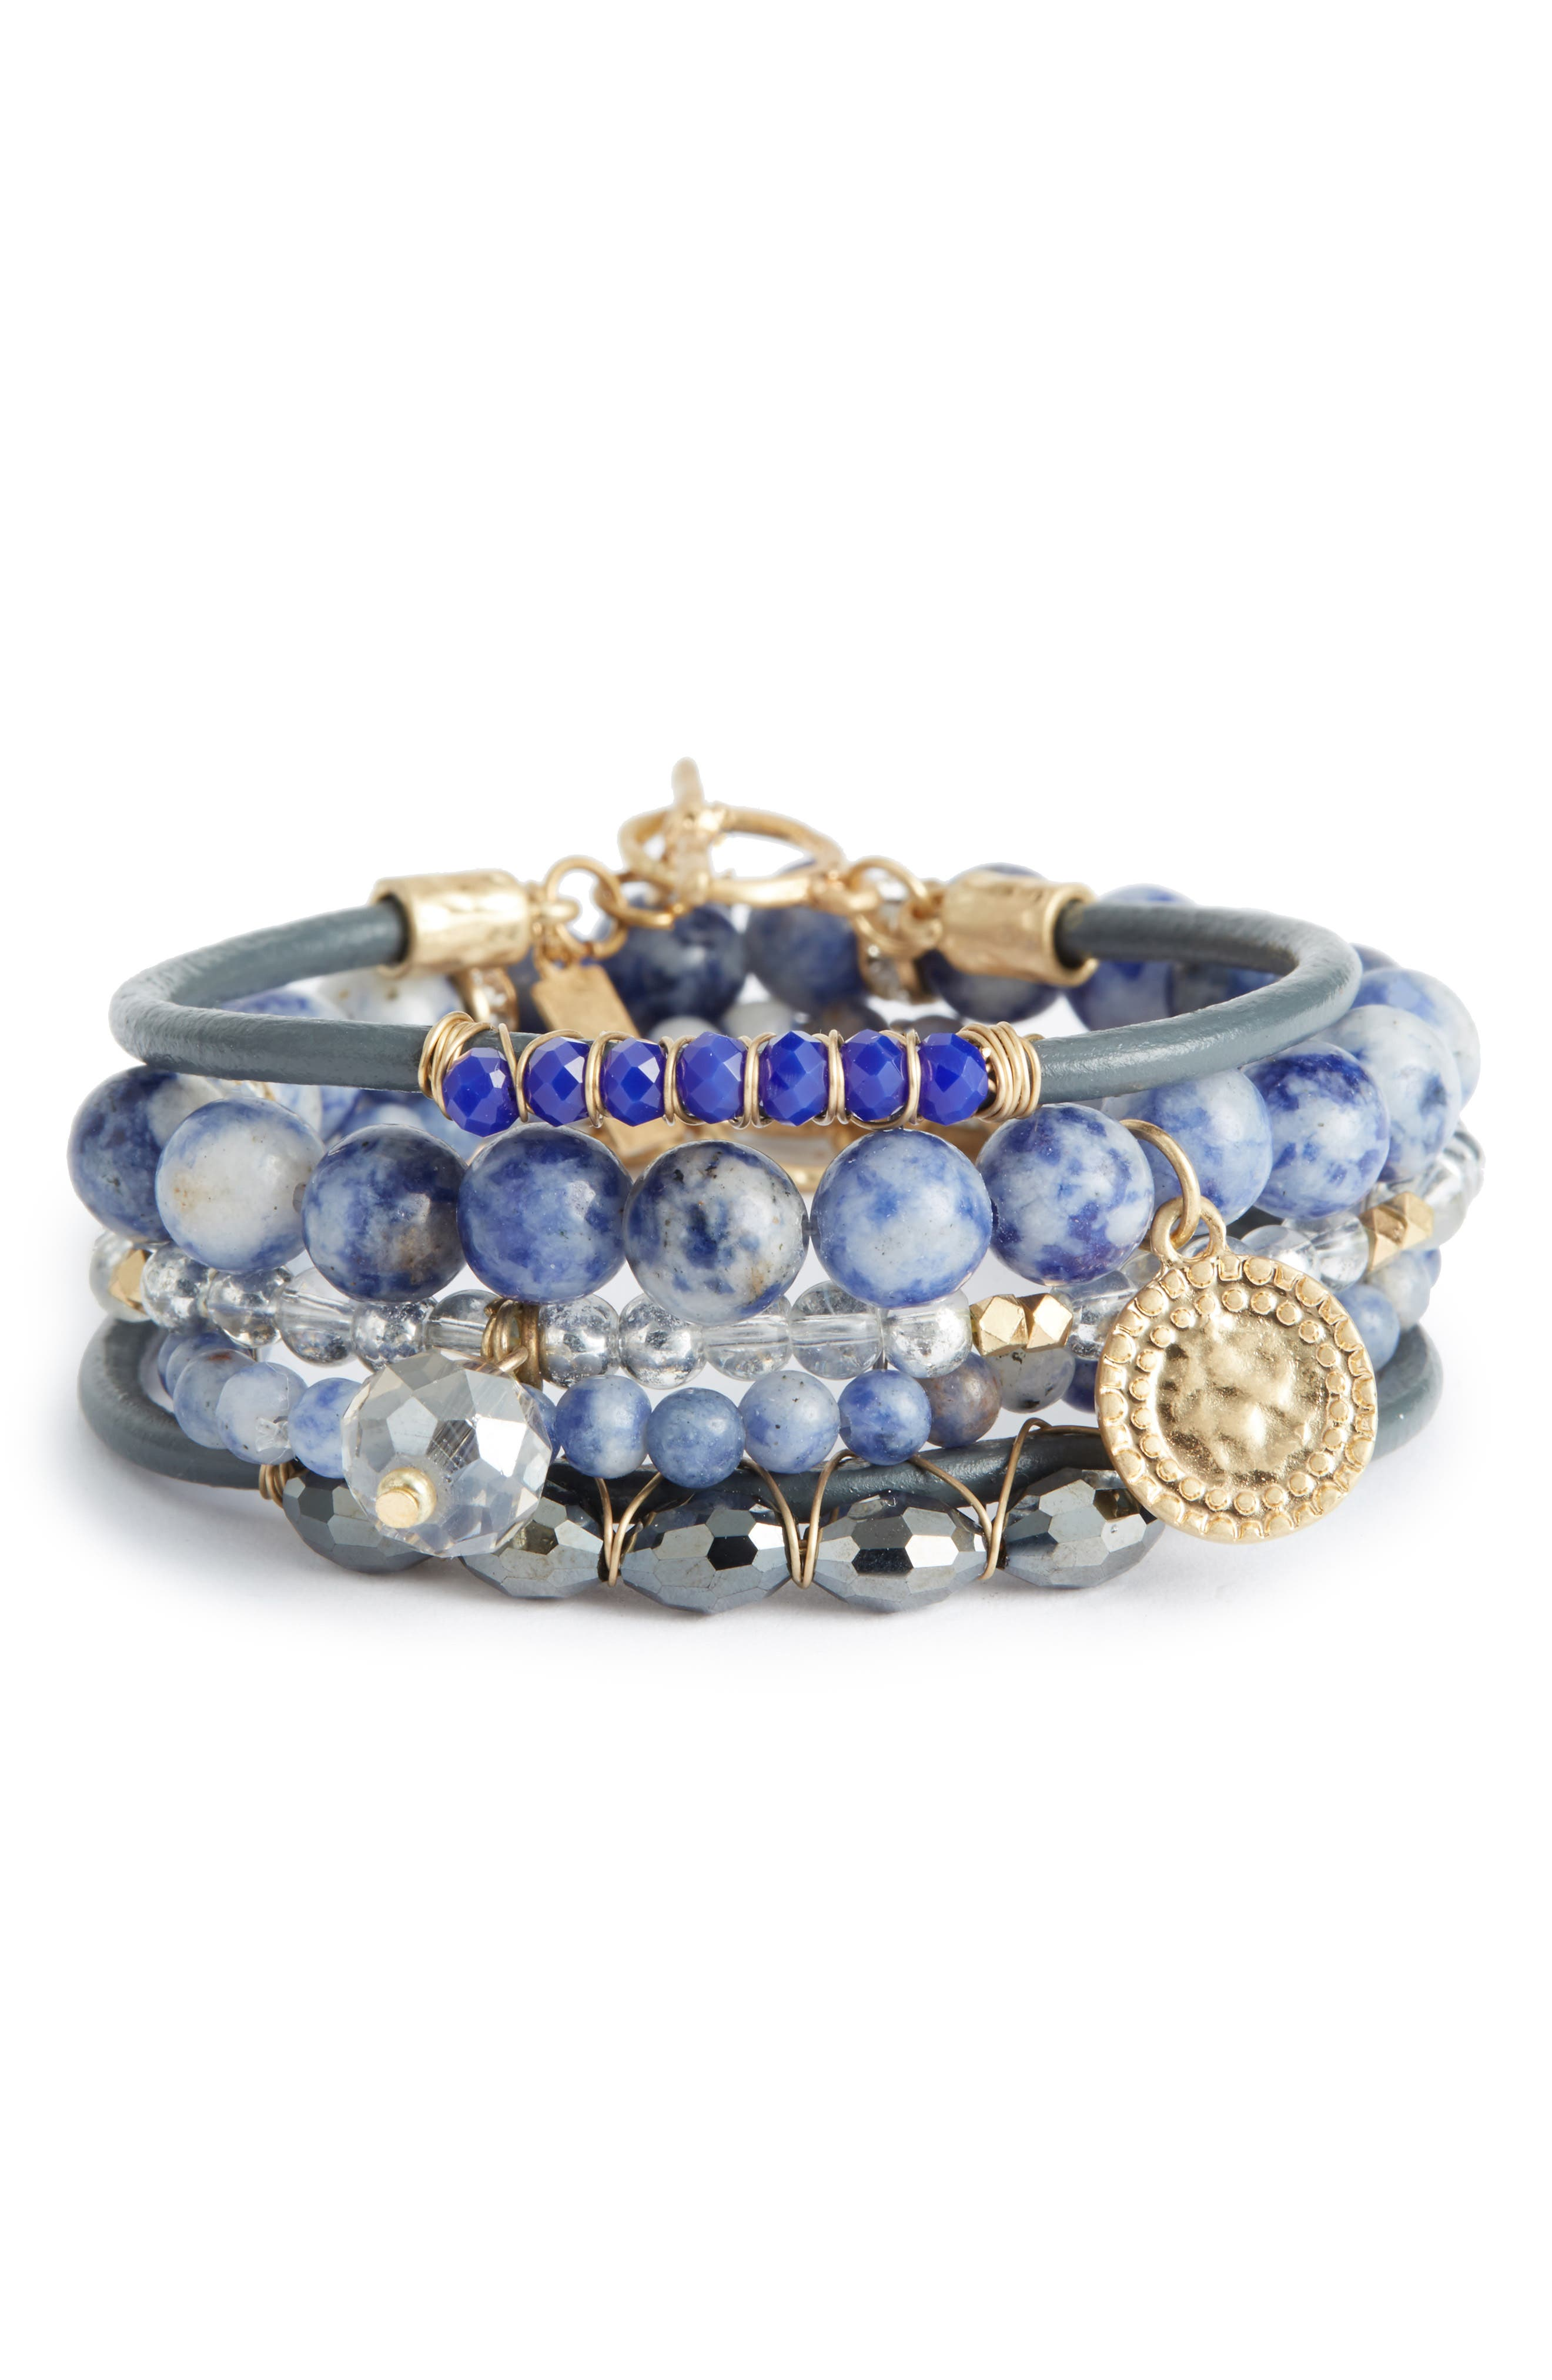 5-Piece Semiprecious Stone Stacking Bracelet,                         Main,                         color, TEAL